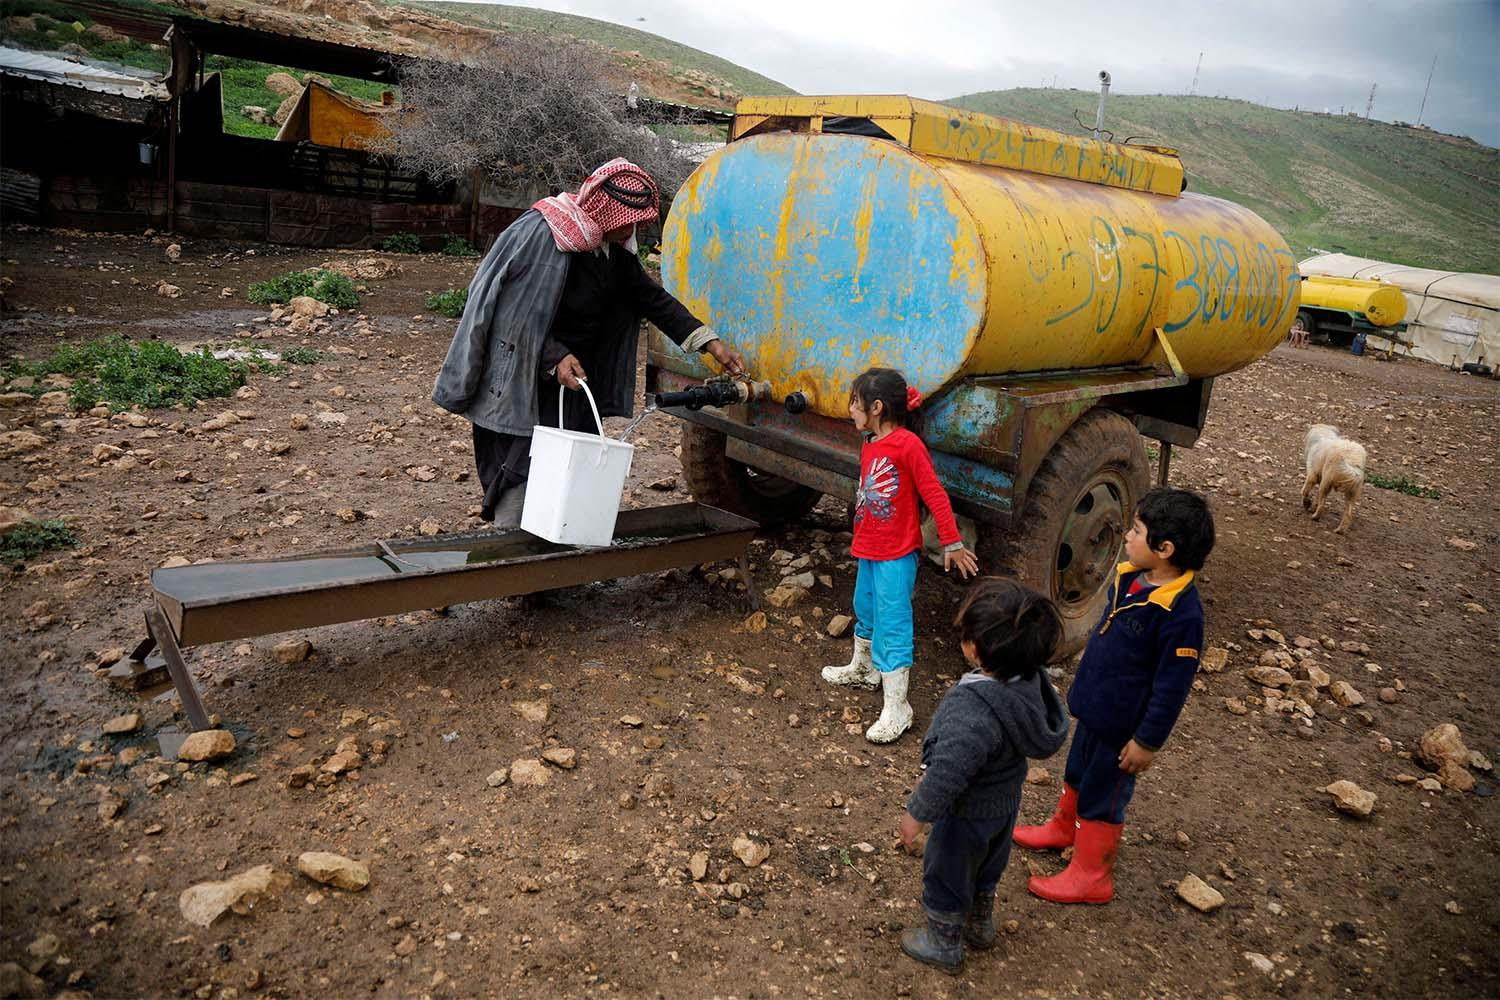 A Palestinian man fills a container with water from a tank in the Bedouin village of Al-Maleh in Jordan valley in the Israeli-occupied West Bank